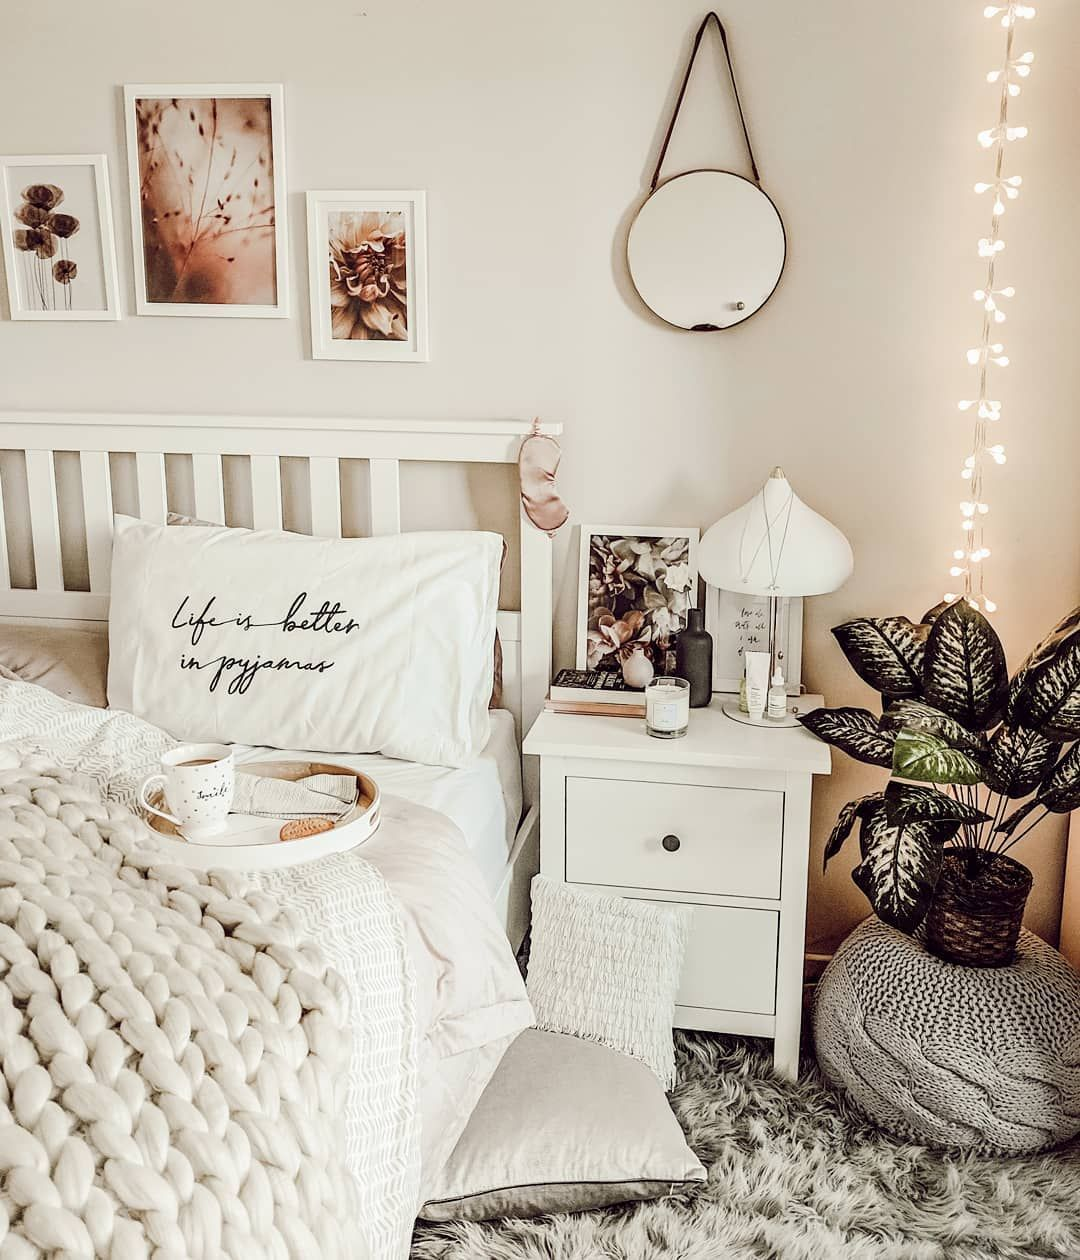 Schlafzimmer Mit Hemnes Einrichten Boho Bedroom Decor Idea Featuring Ikea Hemnes Furniture ...